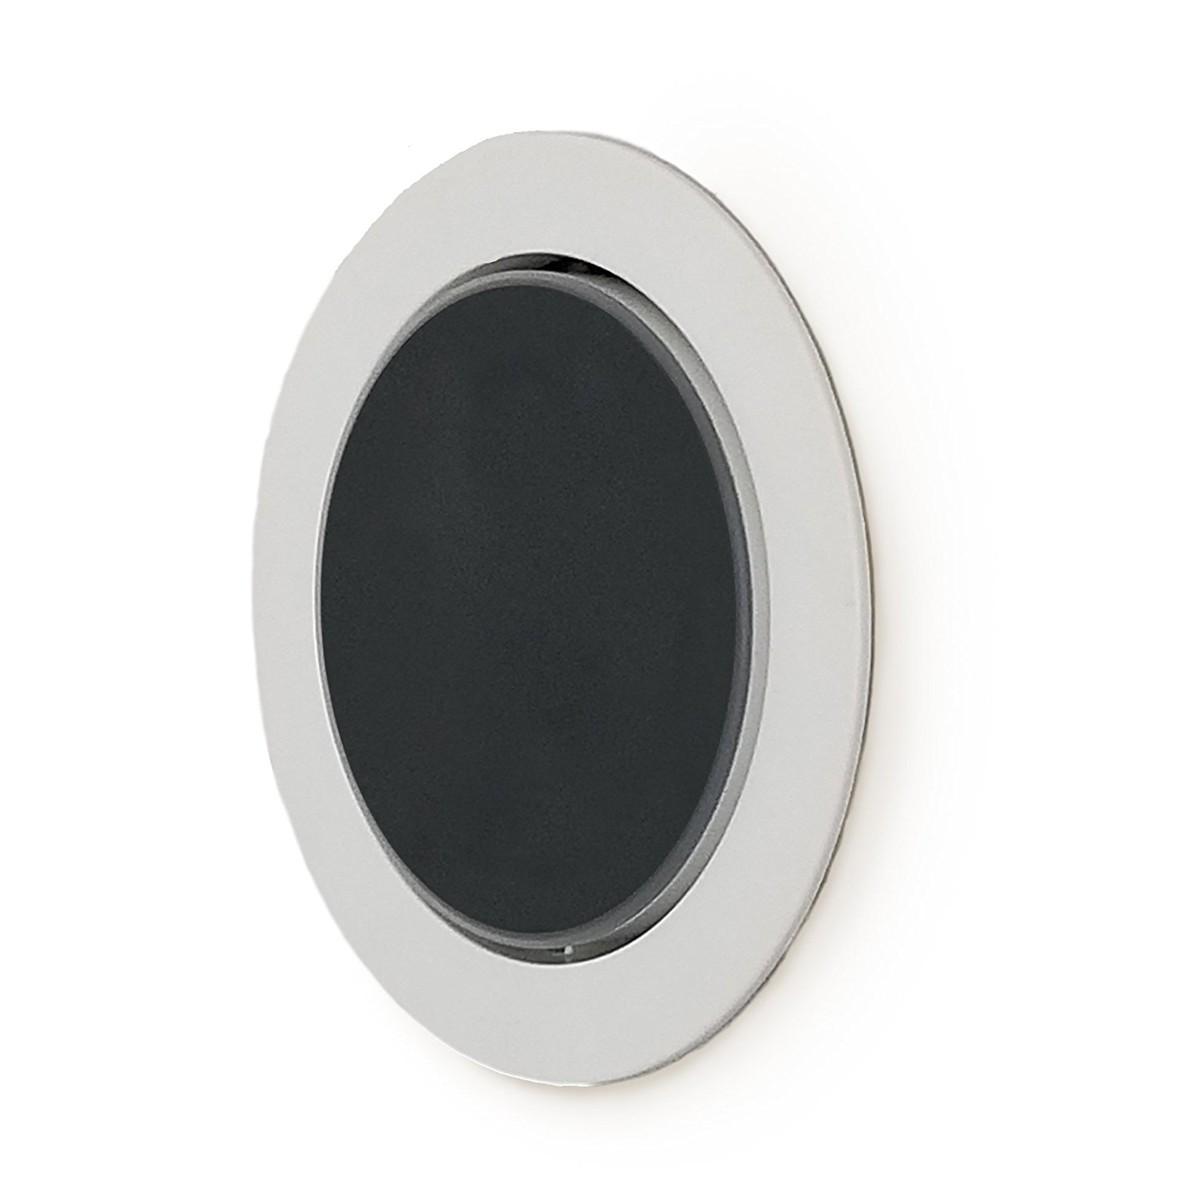 How To Mount Your Amazon Echo Dot On The Wall Ceiling Or